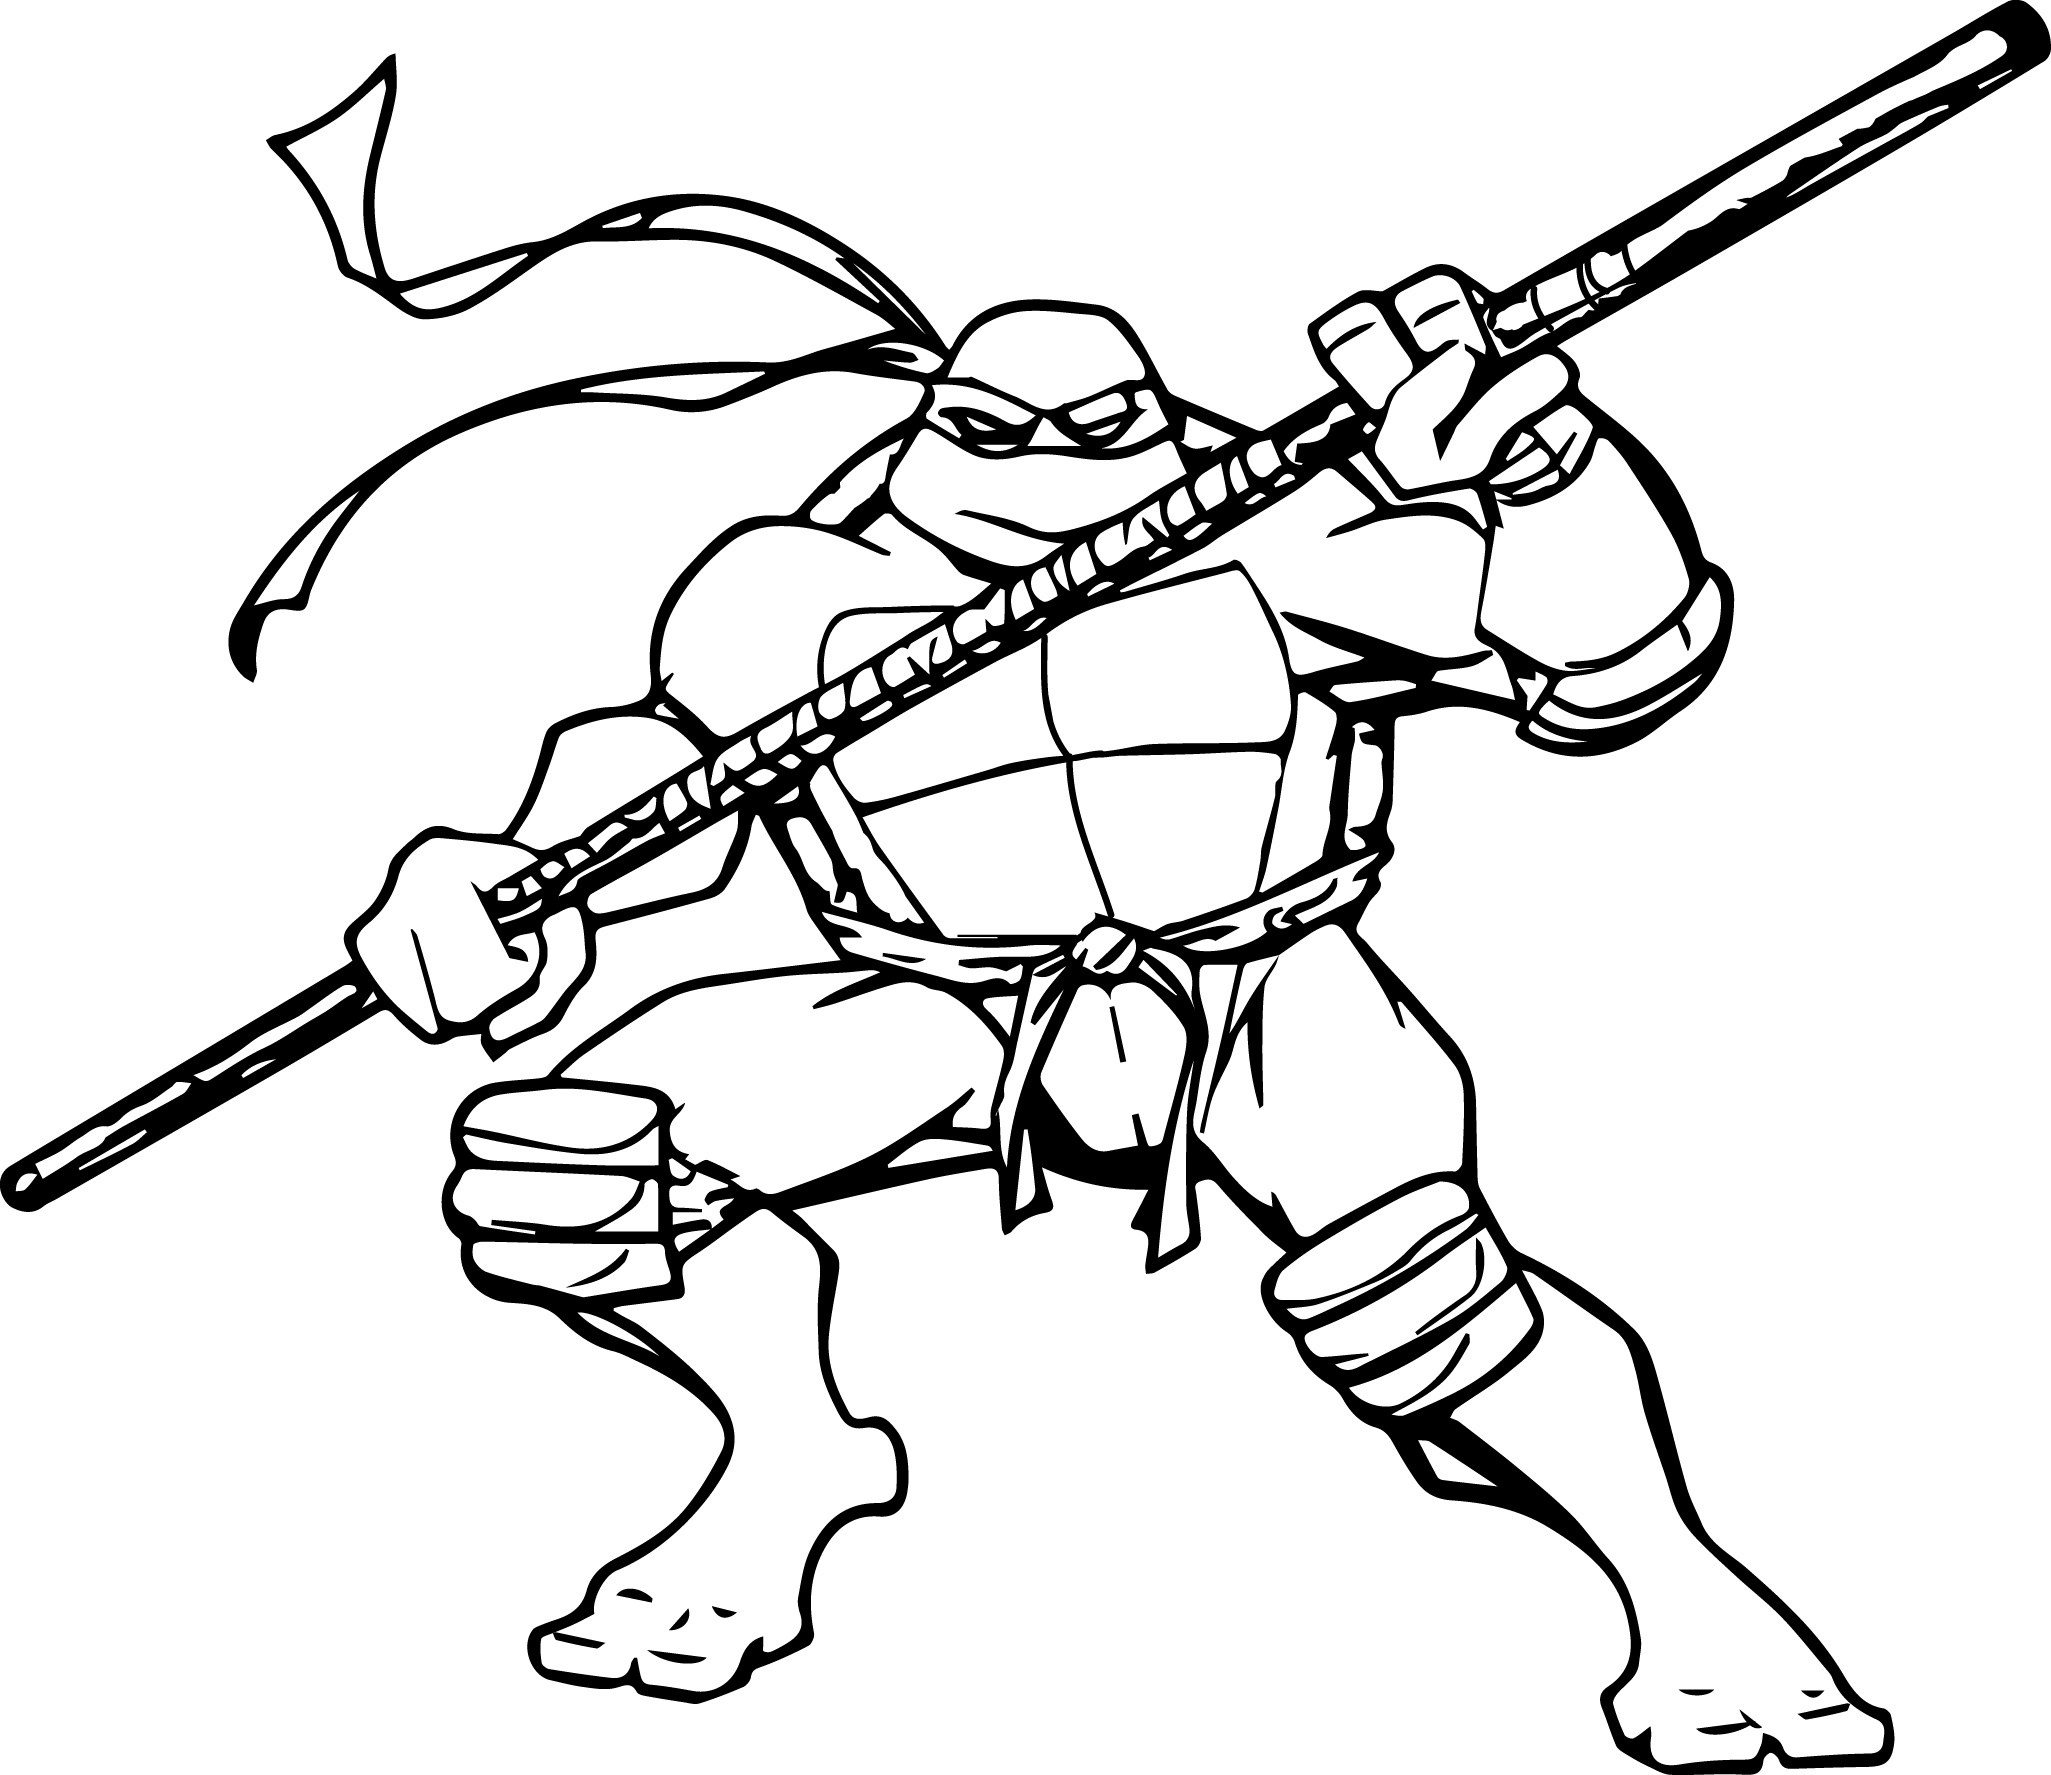 Ninja Turtles Movie Coloring Pages Collection Free